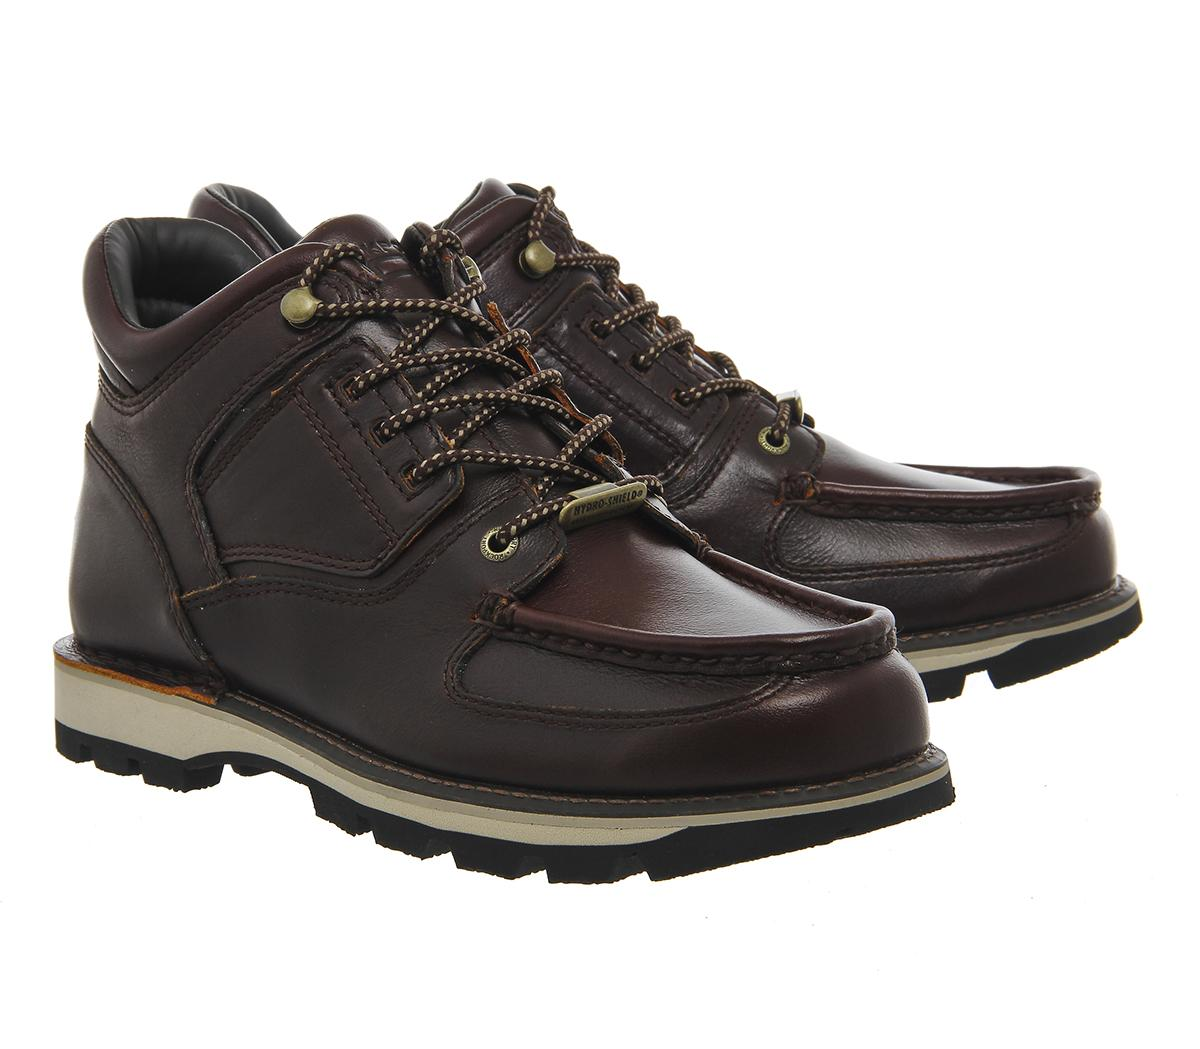 Rockport Umbwe Boots In Brown For Men Lyst